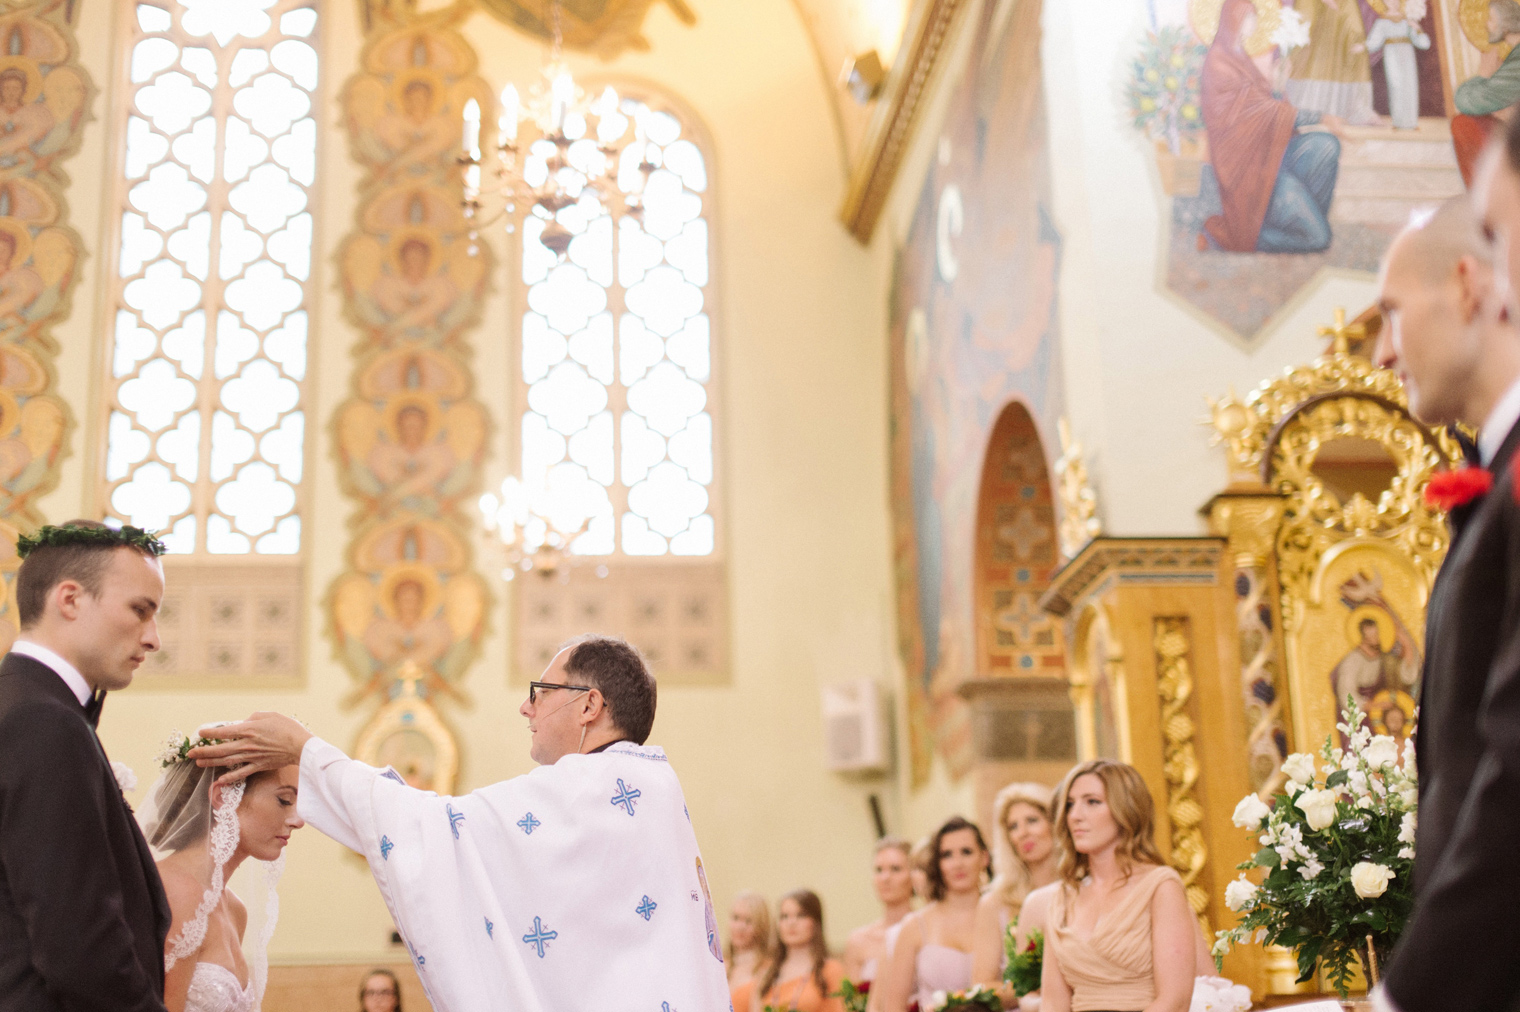 Crowing ceremony during a Ukrainian Orthodox Wedding Ceremony in Hamtramck Michigan by photographer Heather Jowett.